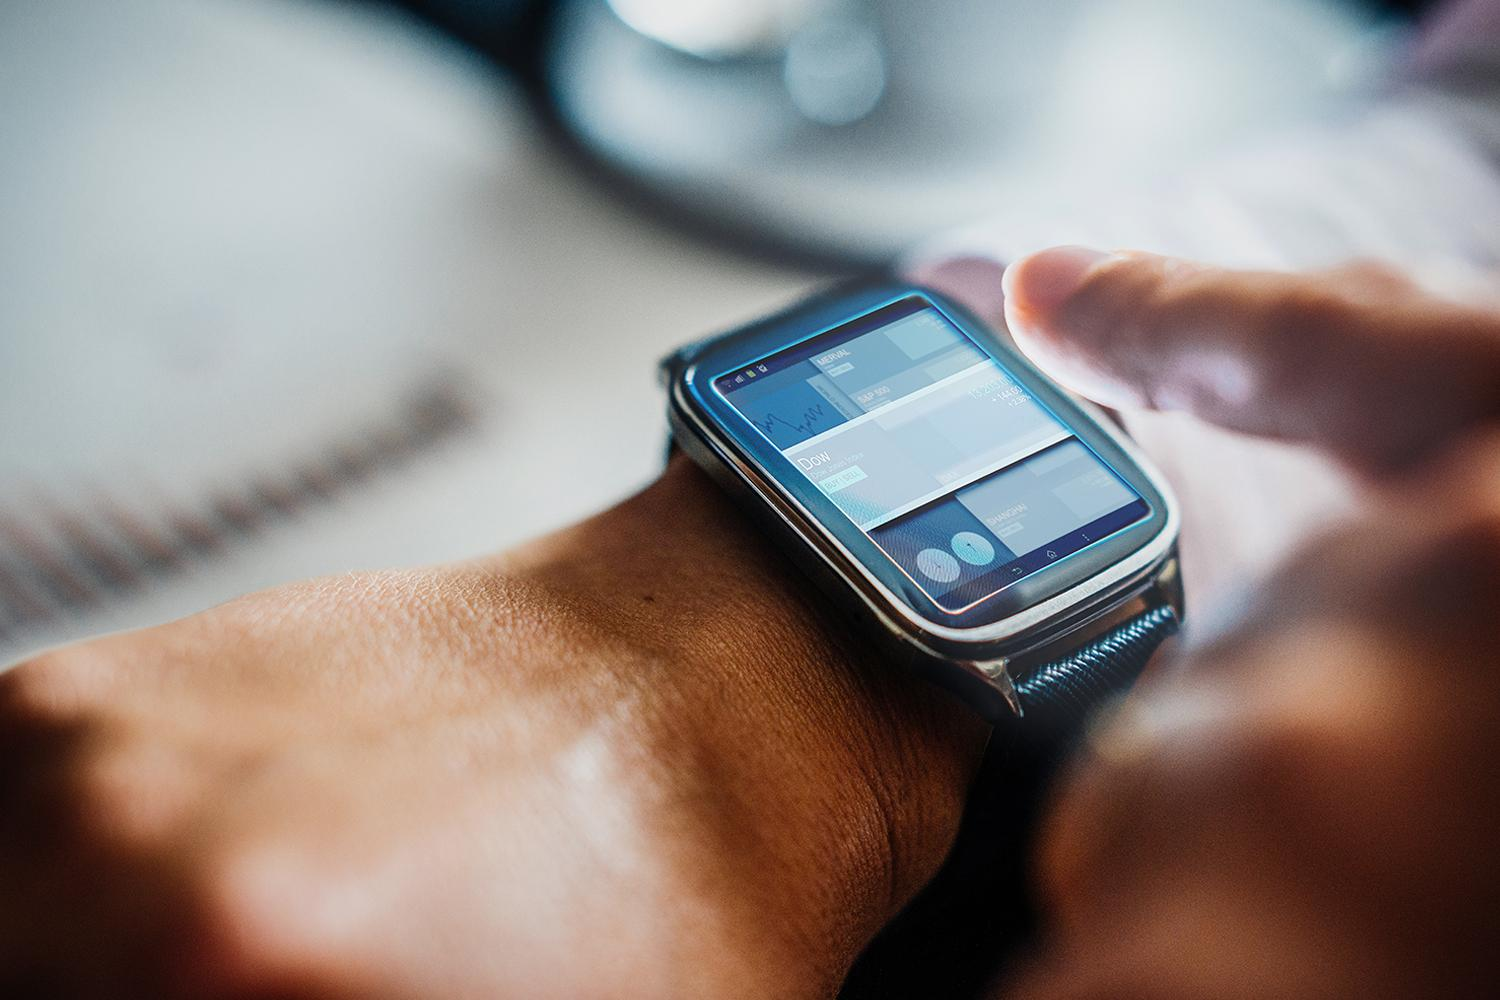 Experience 2030 Smartwatch